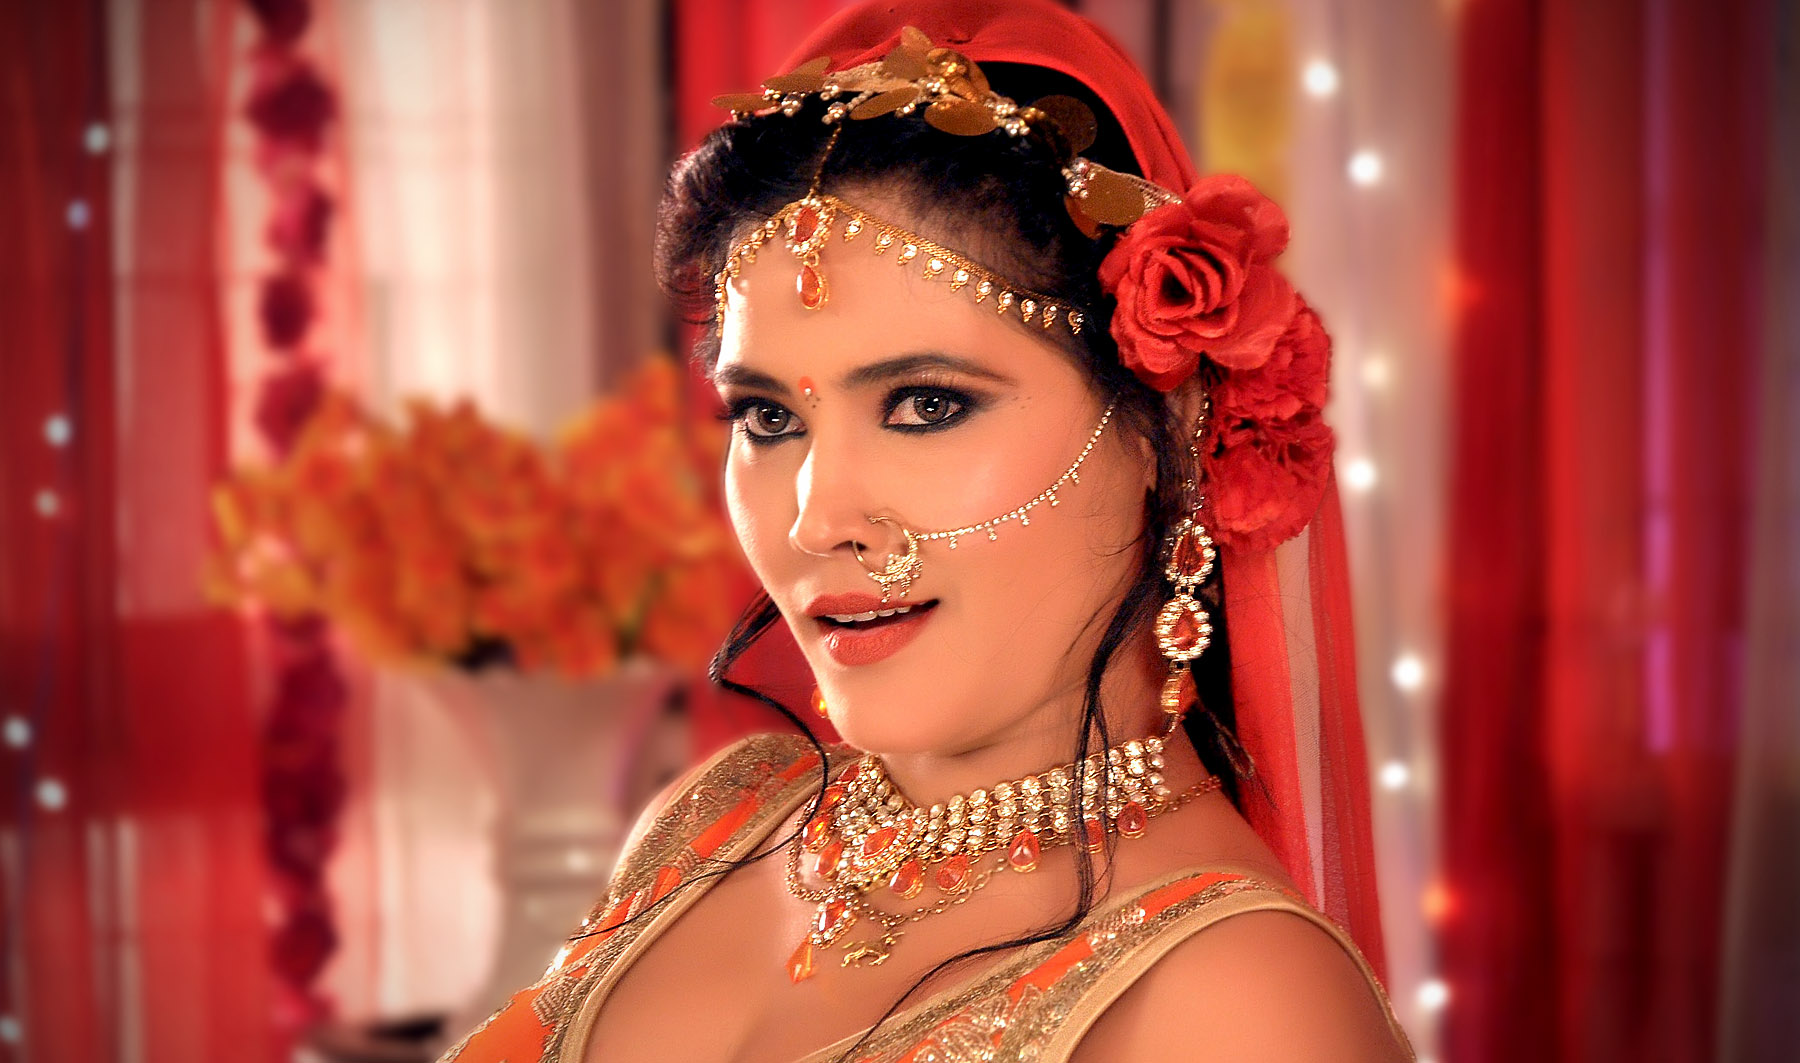 Bhojpuri Hot & Sexy Photos of Actresses - Images, Pictures